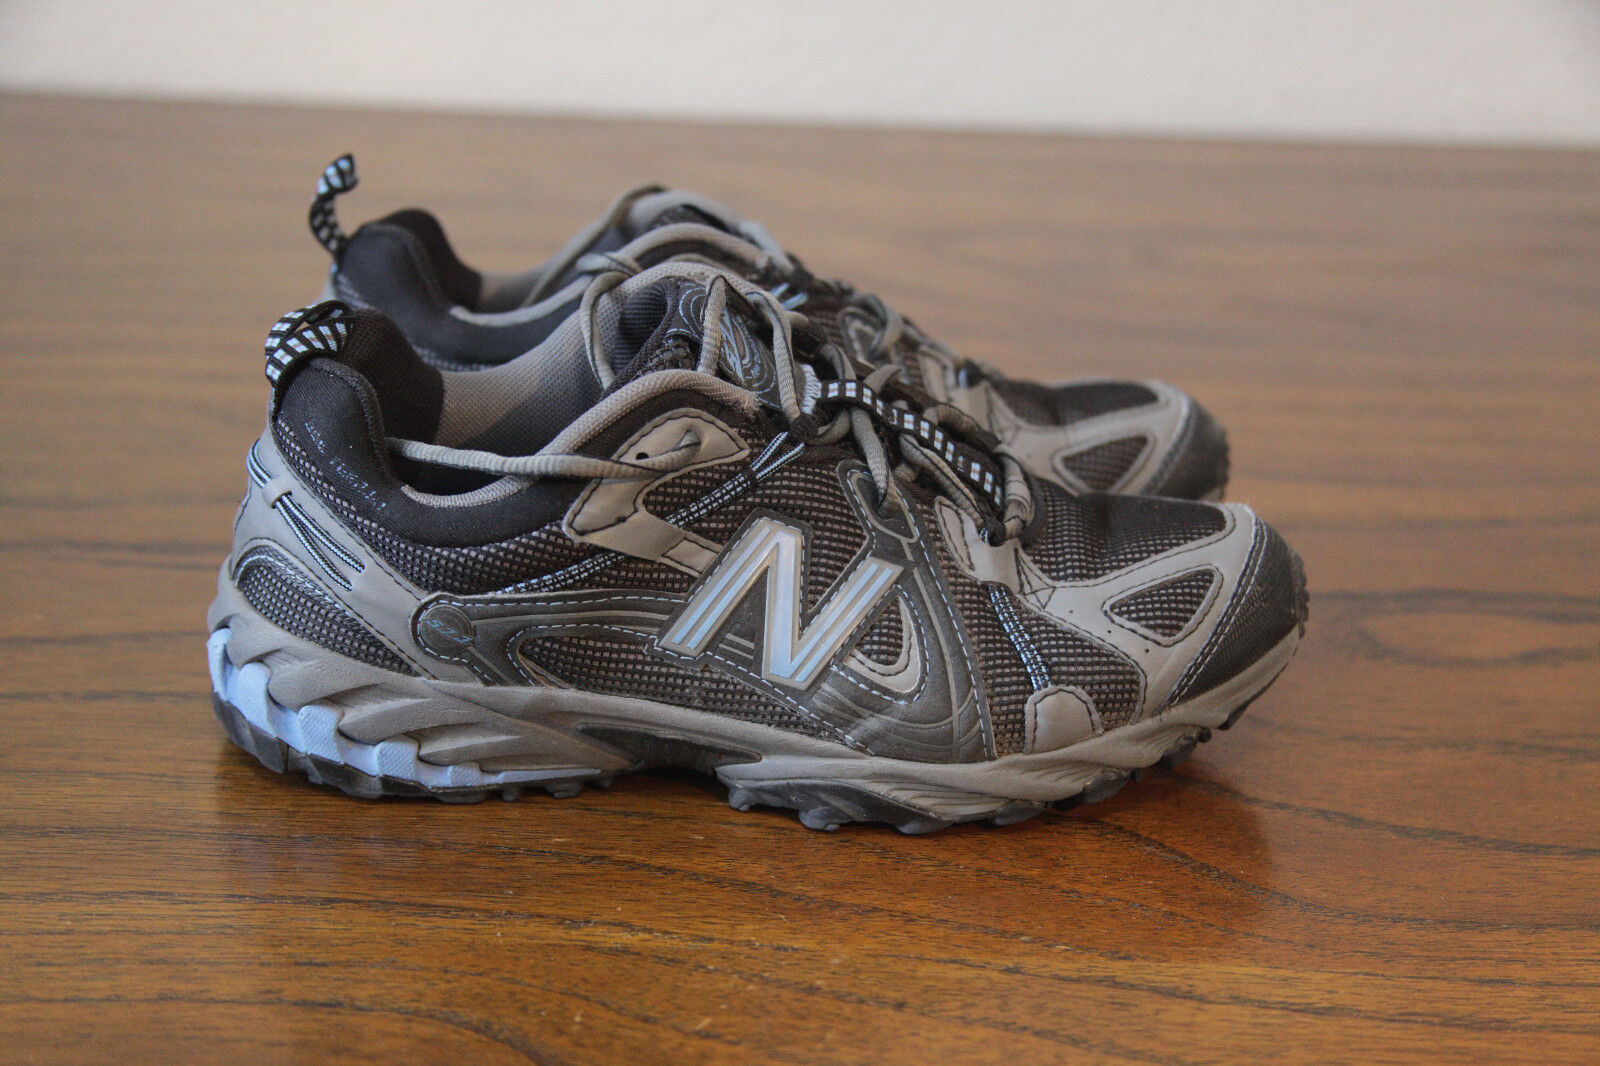 New Balance Women's WT573BB Trail   Hiking shoes Size 8.5 bluee Superfeet Insoles